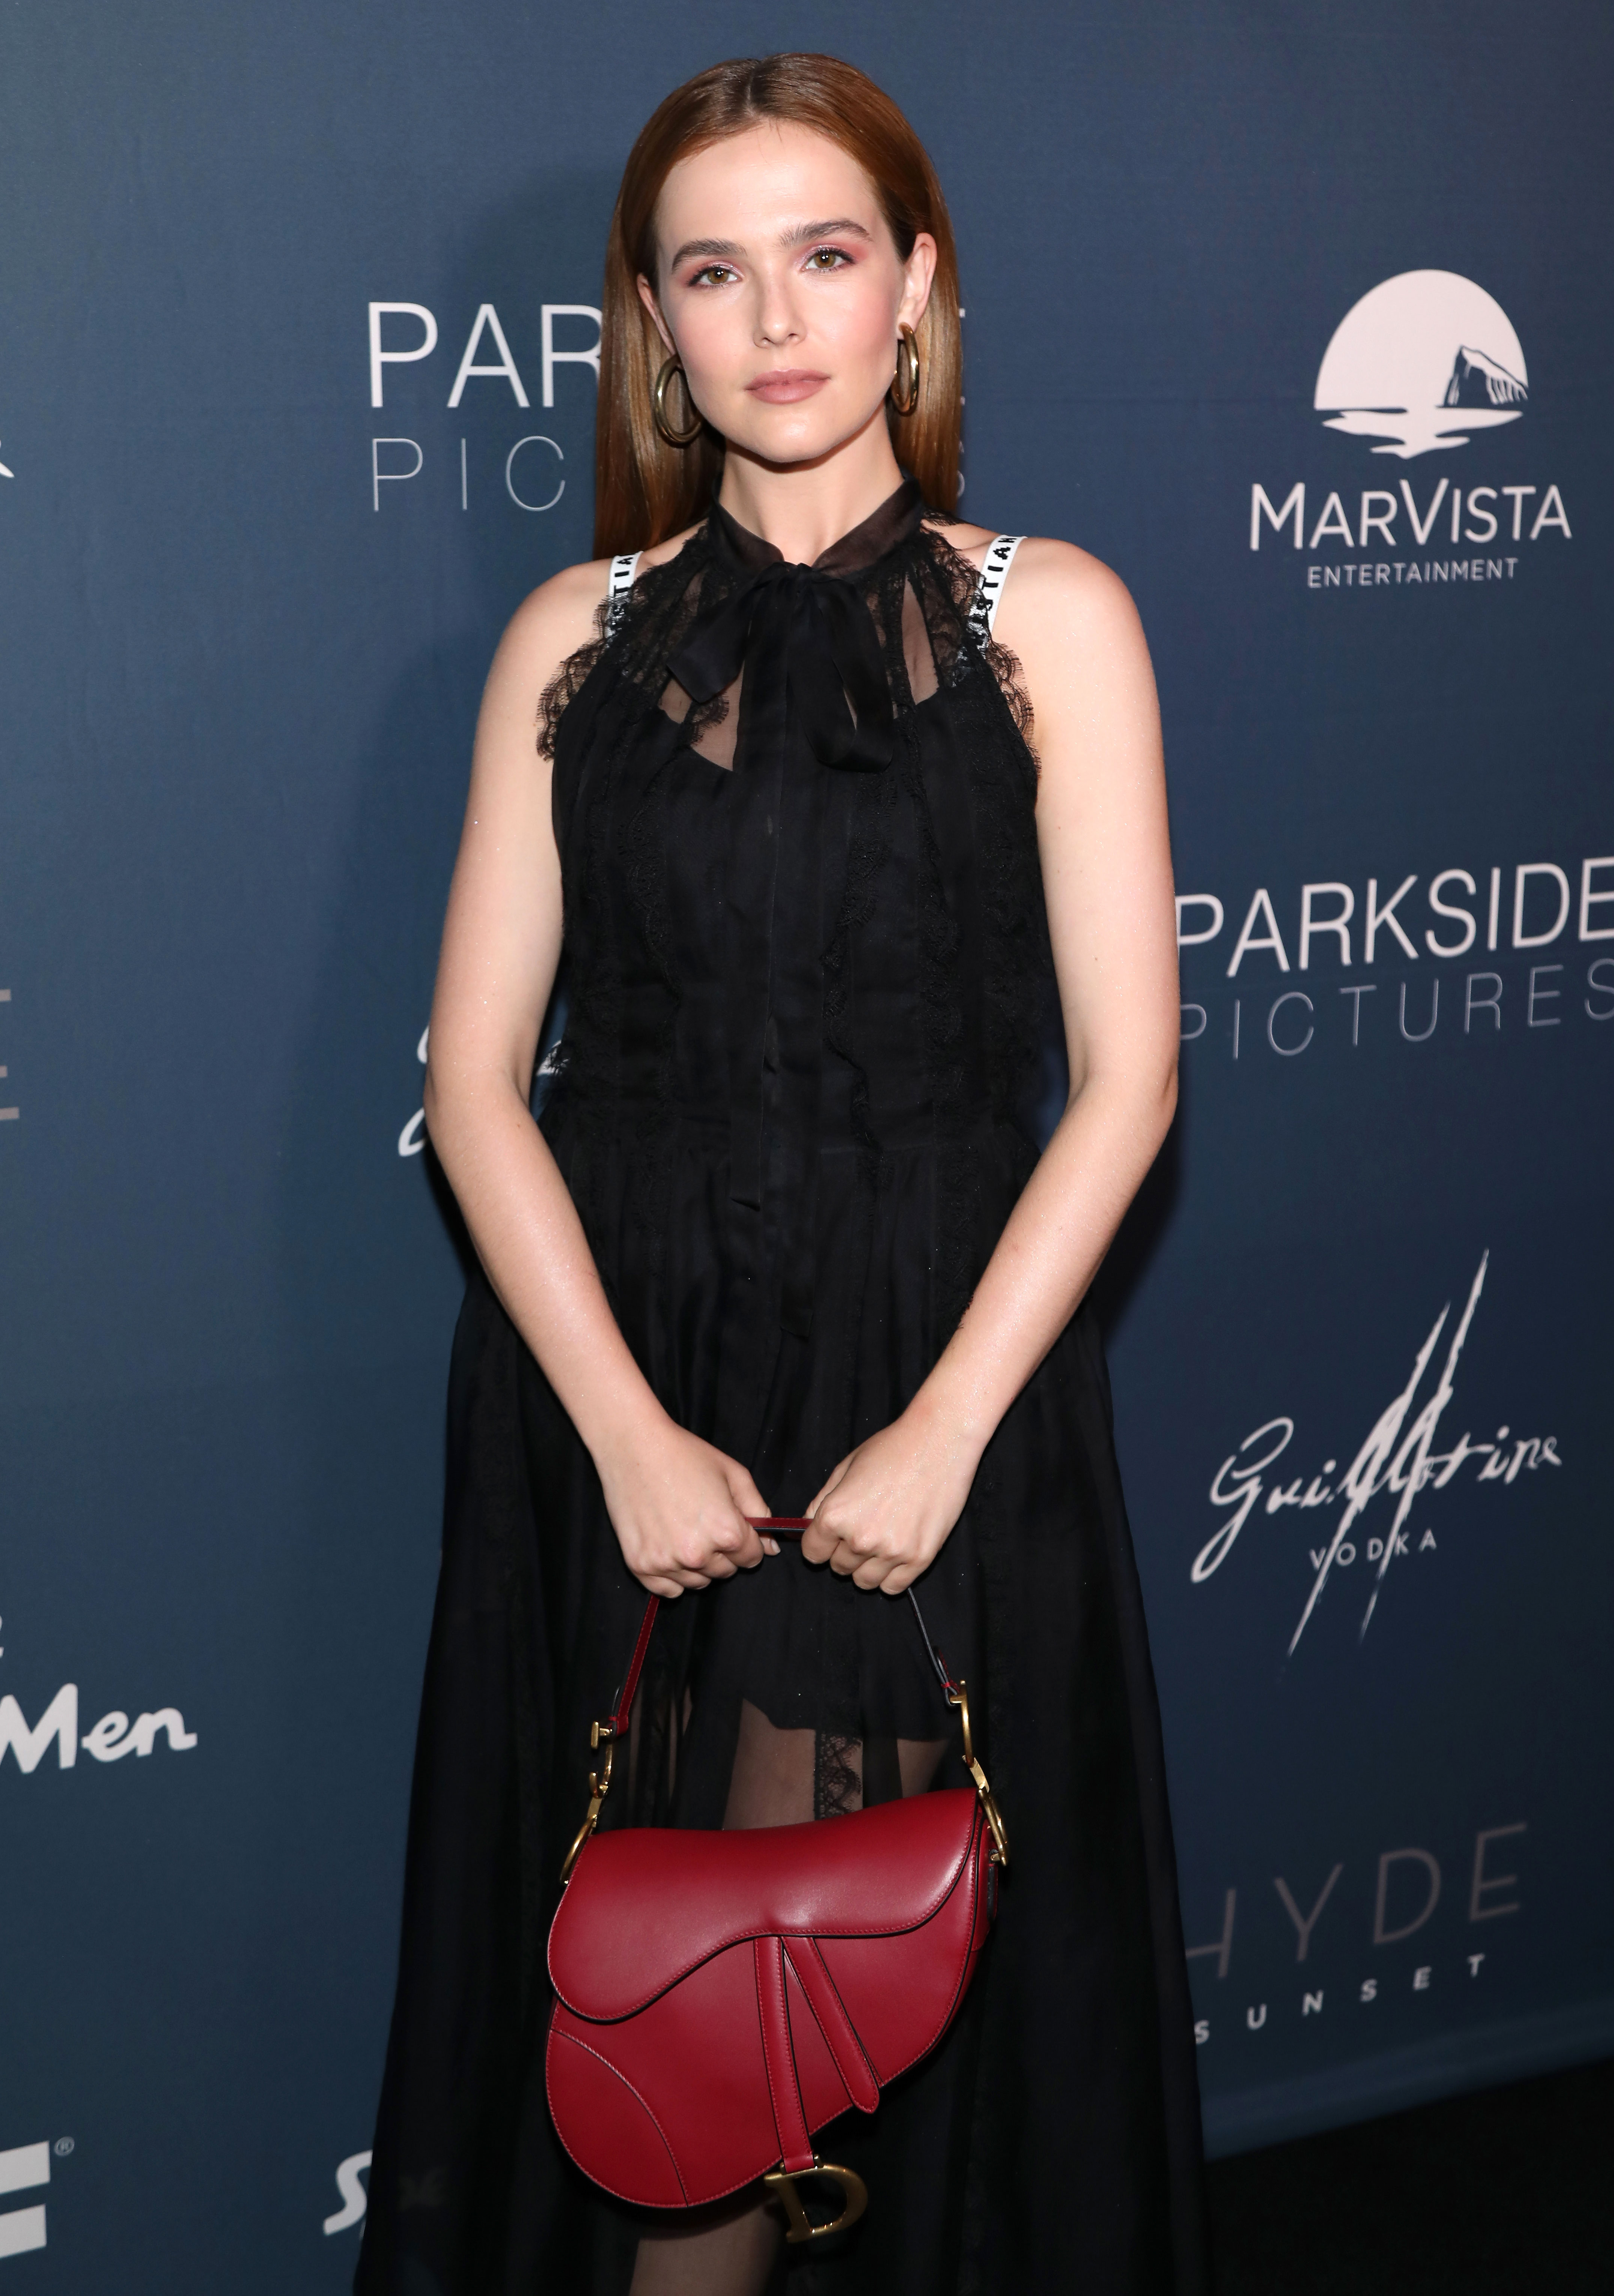 """Zoey Deutch - LOS ANGELES, CA – JUNE 06: Zoey Deutch attends the Premiere of MarVista Entertainment's """"The Year of Spectacular Men"""" at AMC Dine-In Sunset 5 on June 6, 2018 in Los Angeles, California. (Photo by Jerritt Clark/FilmMagic)"""